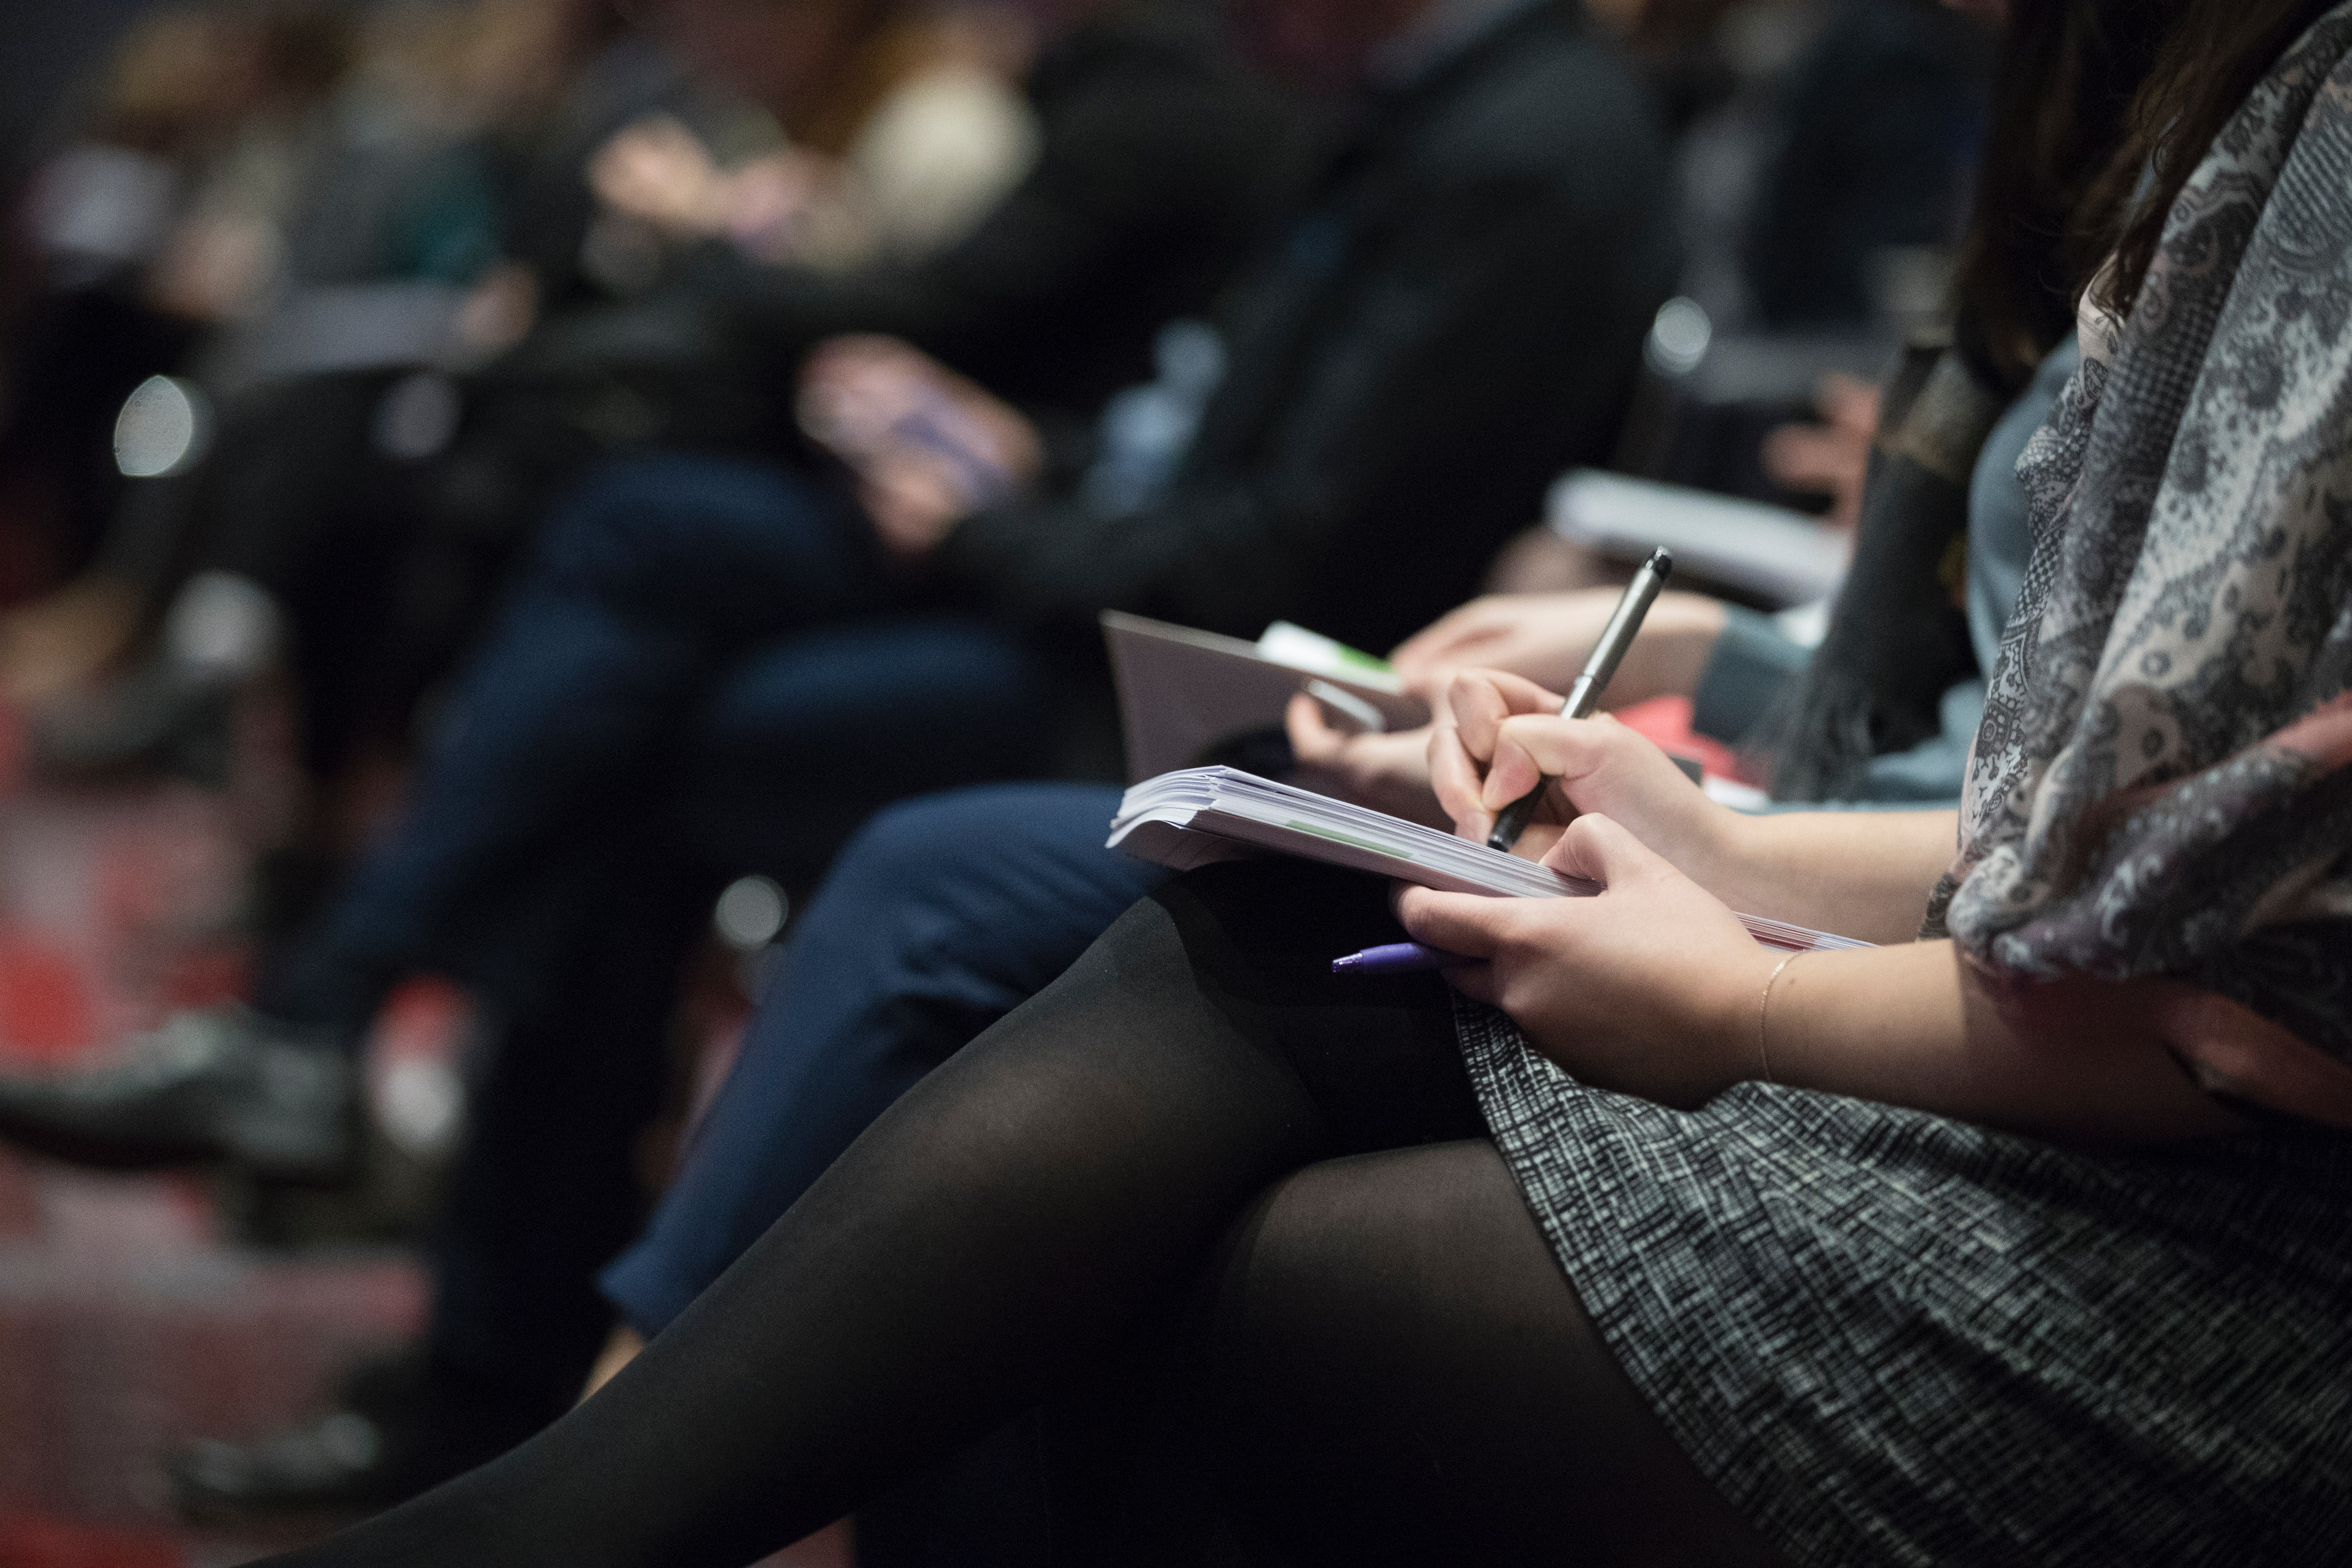 Woman writing in notebook with pen, seated in full auditorium; image by The Climate Reality Project, via Unsplash.com.